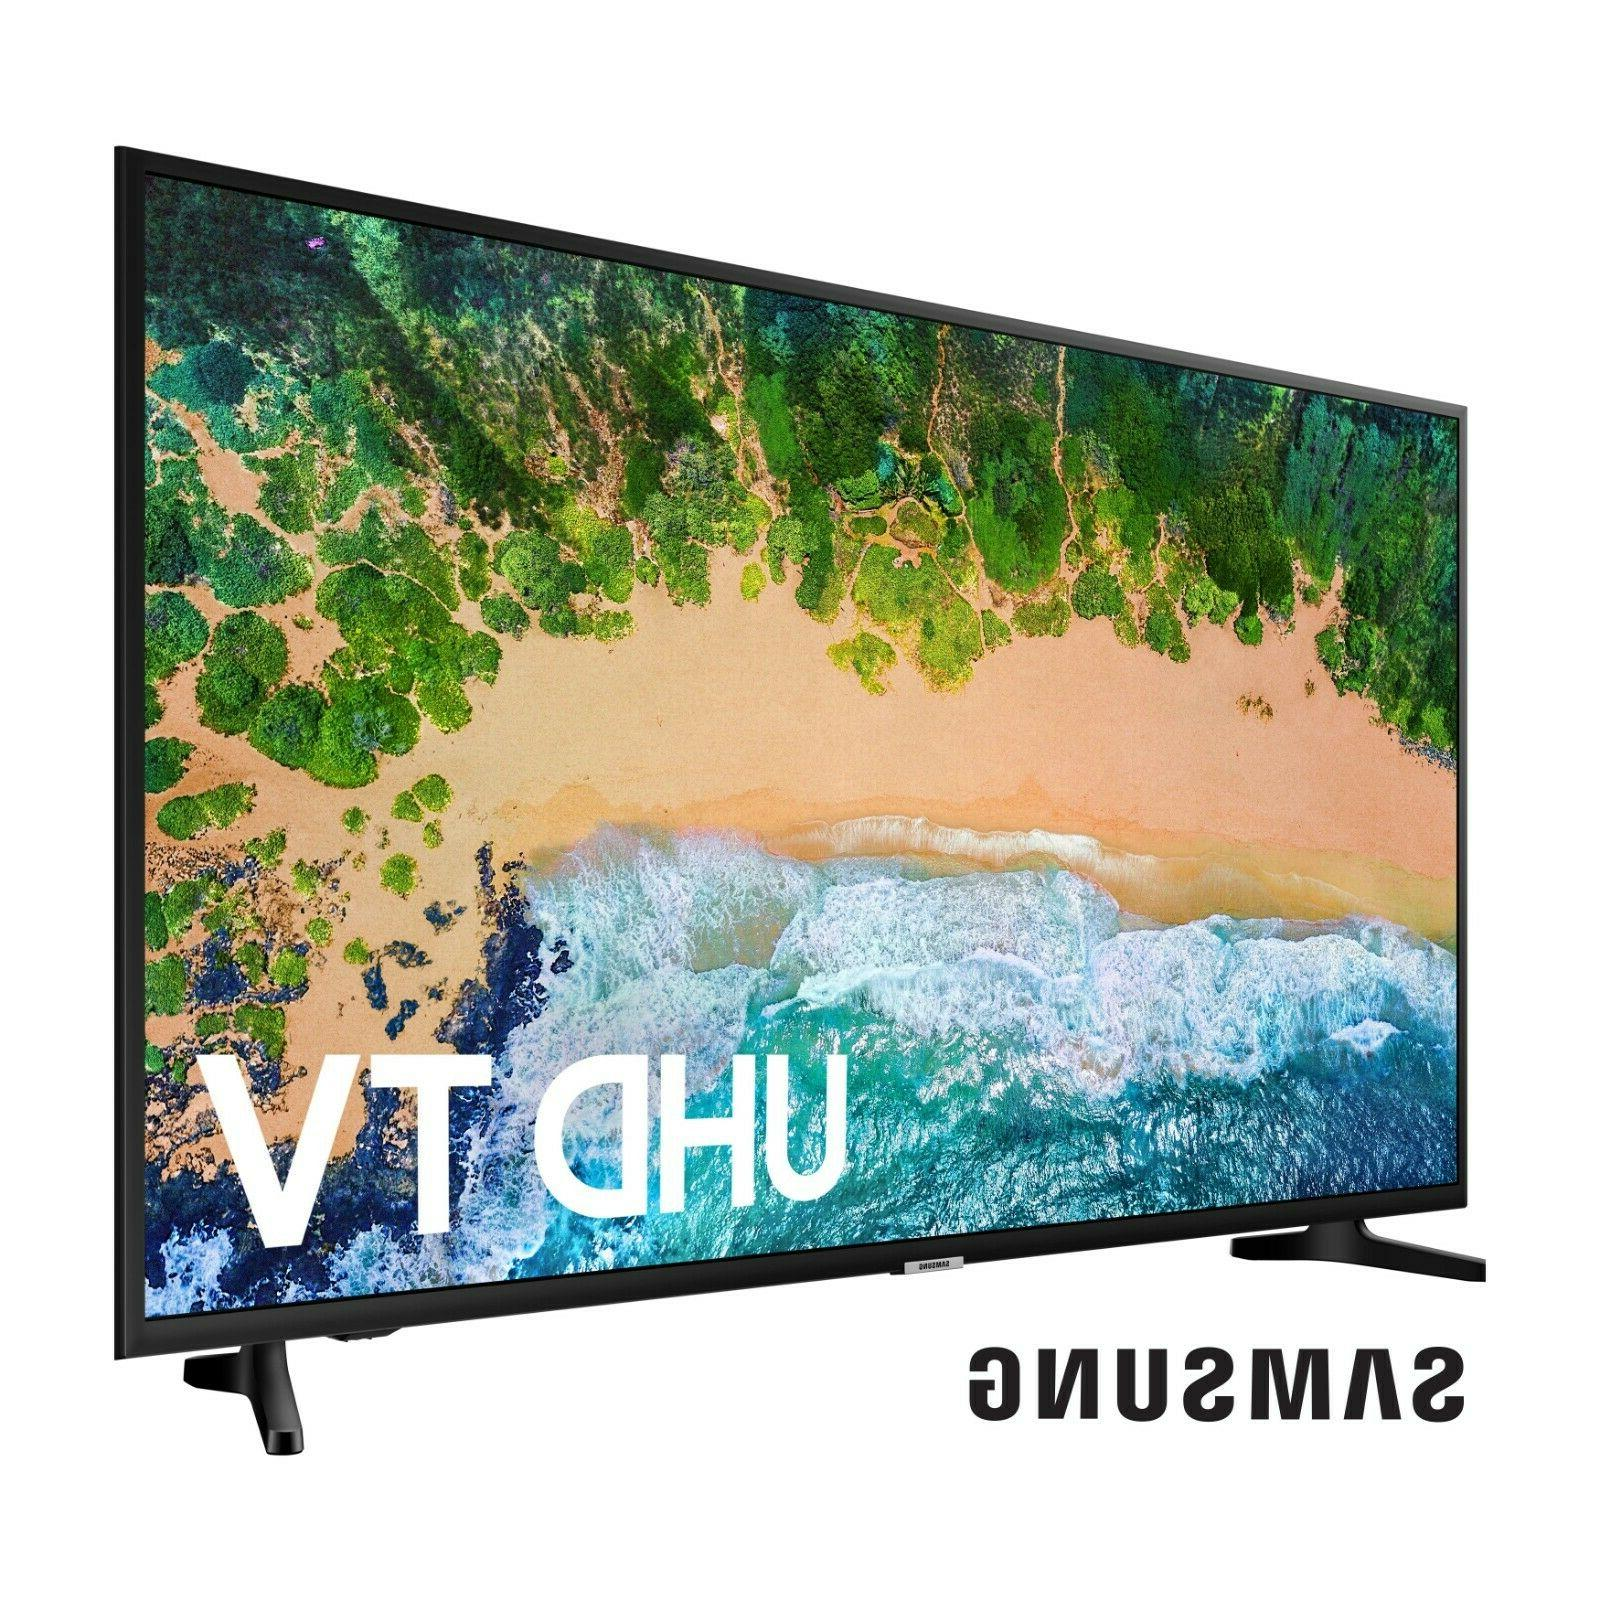 SAMSUNG Class UHD 2160p TV with HDR New Television.